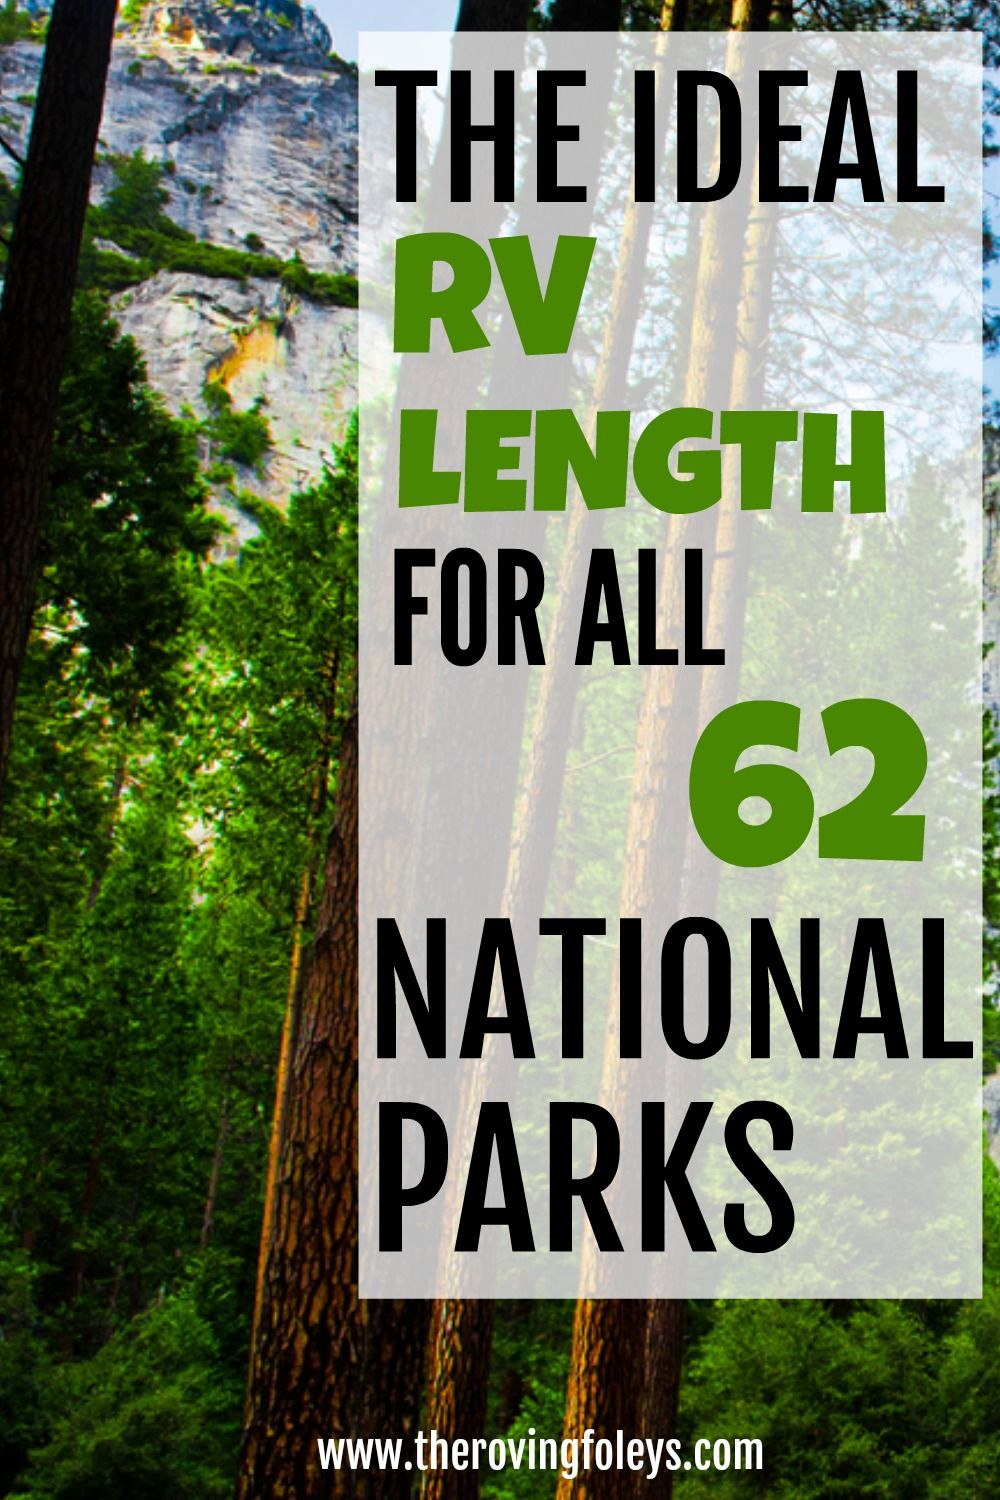 2020 Guide National Parks Rv Length Every Park The Roving Foley S In 2020 Rv Camping Trips Travel Trailer Camping Rv Road Trip